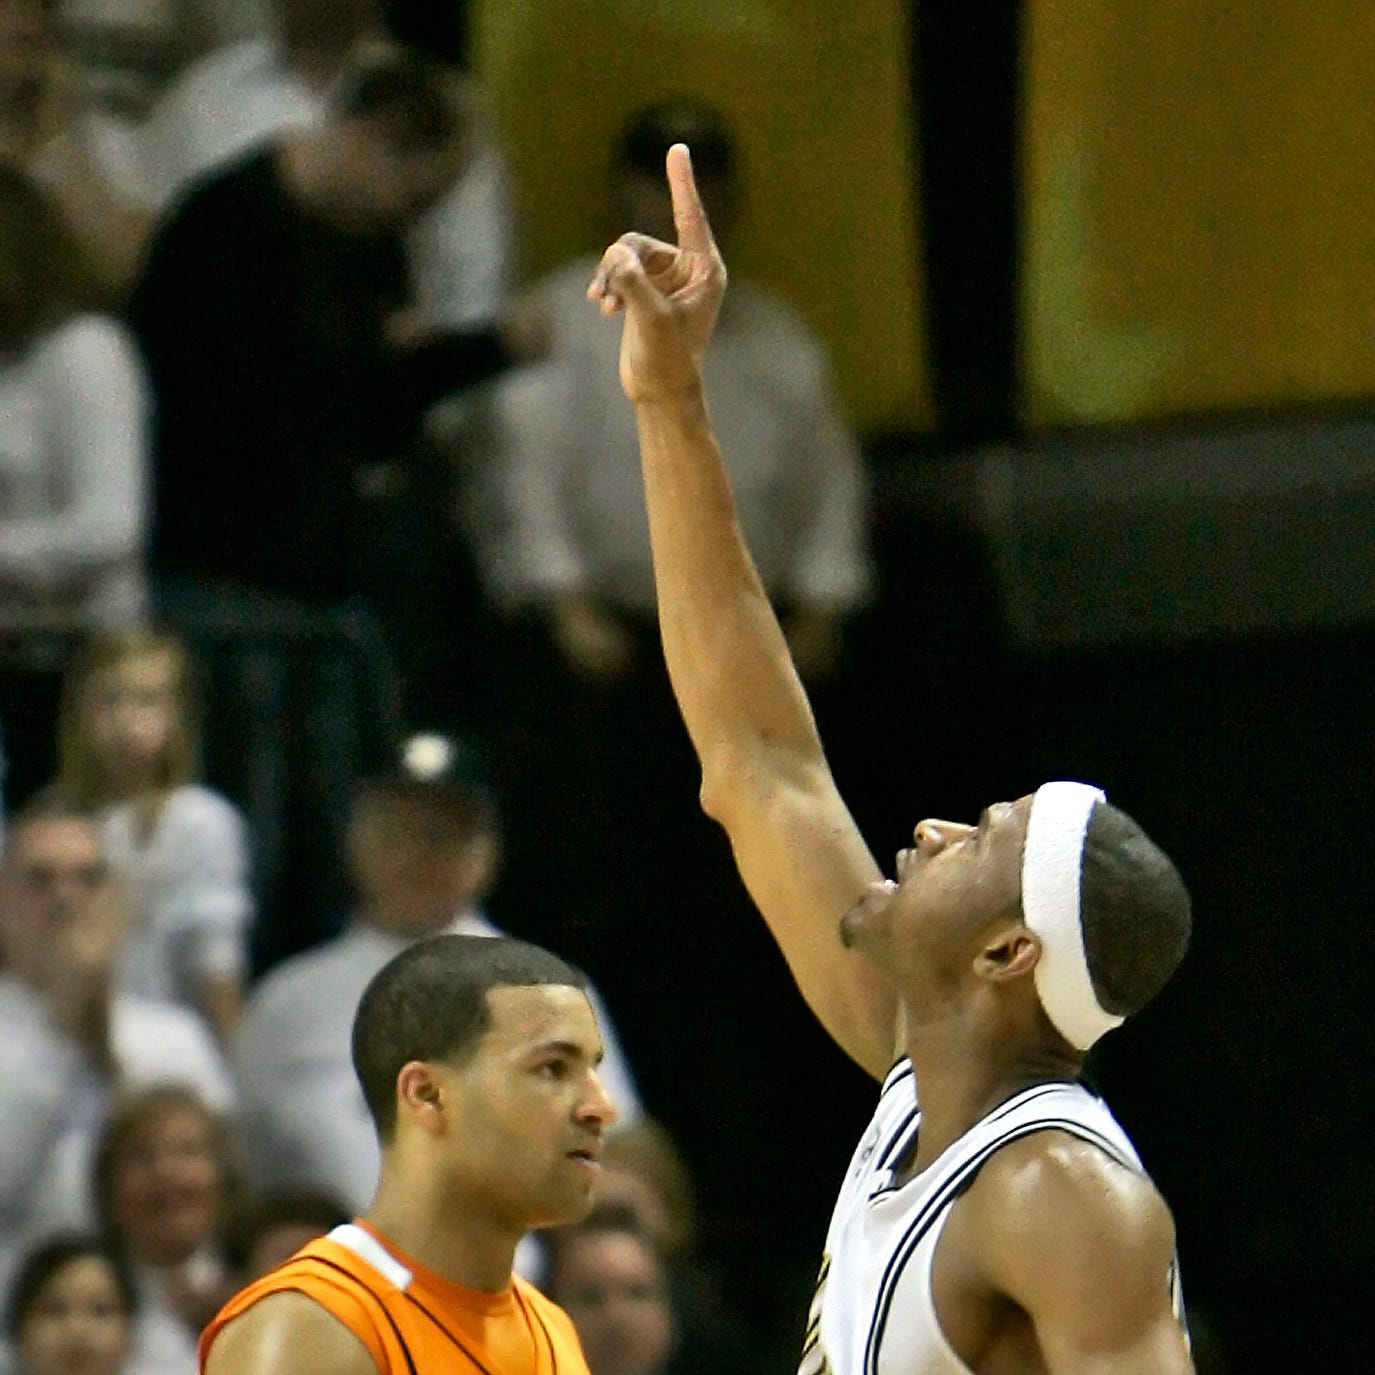 UT Vols basketball has to beat Vanderbilt to stay No. 1, just like a decade ago